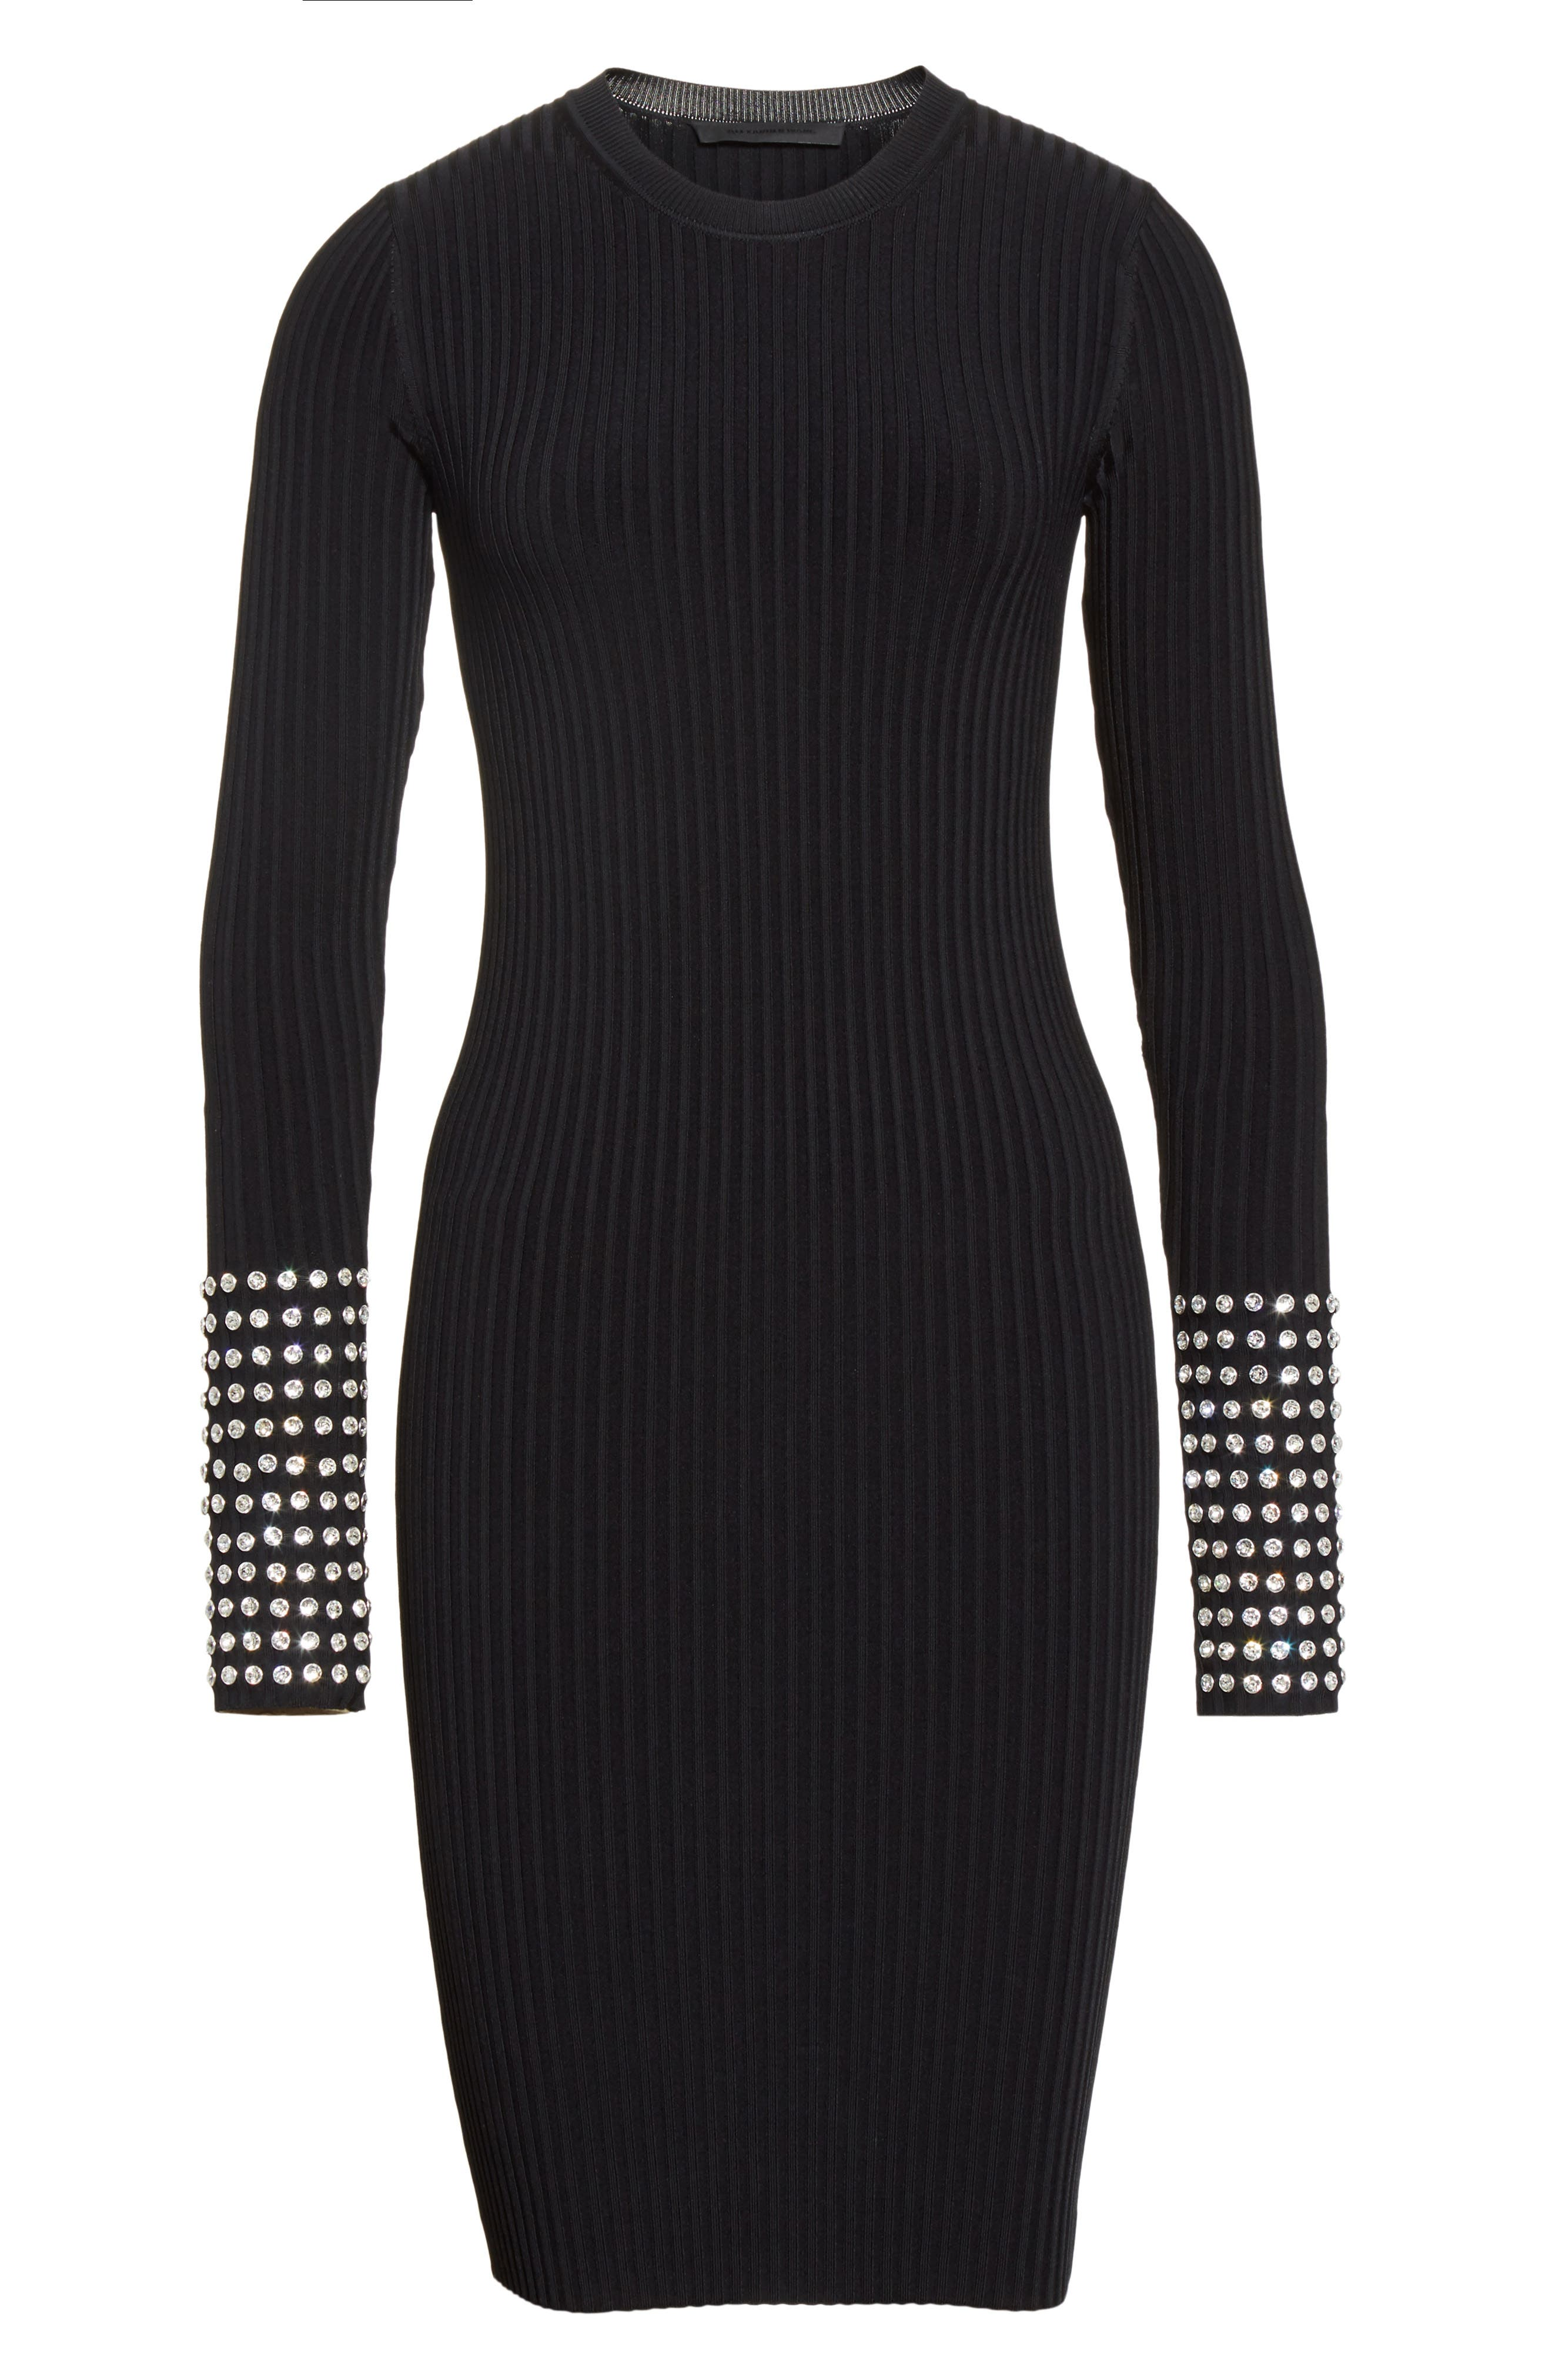 Crystal Cuff Rib Knit Dress,                             Alternate thumbnail 7, color,                             Black